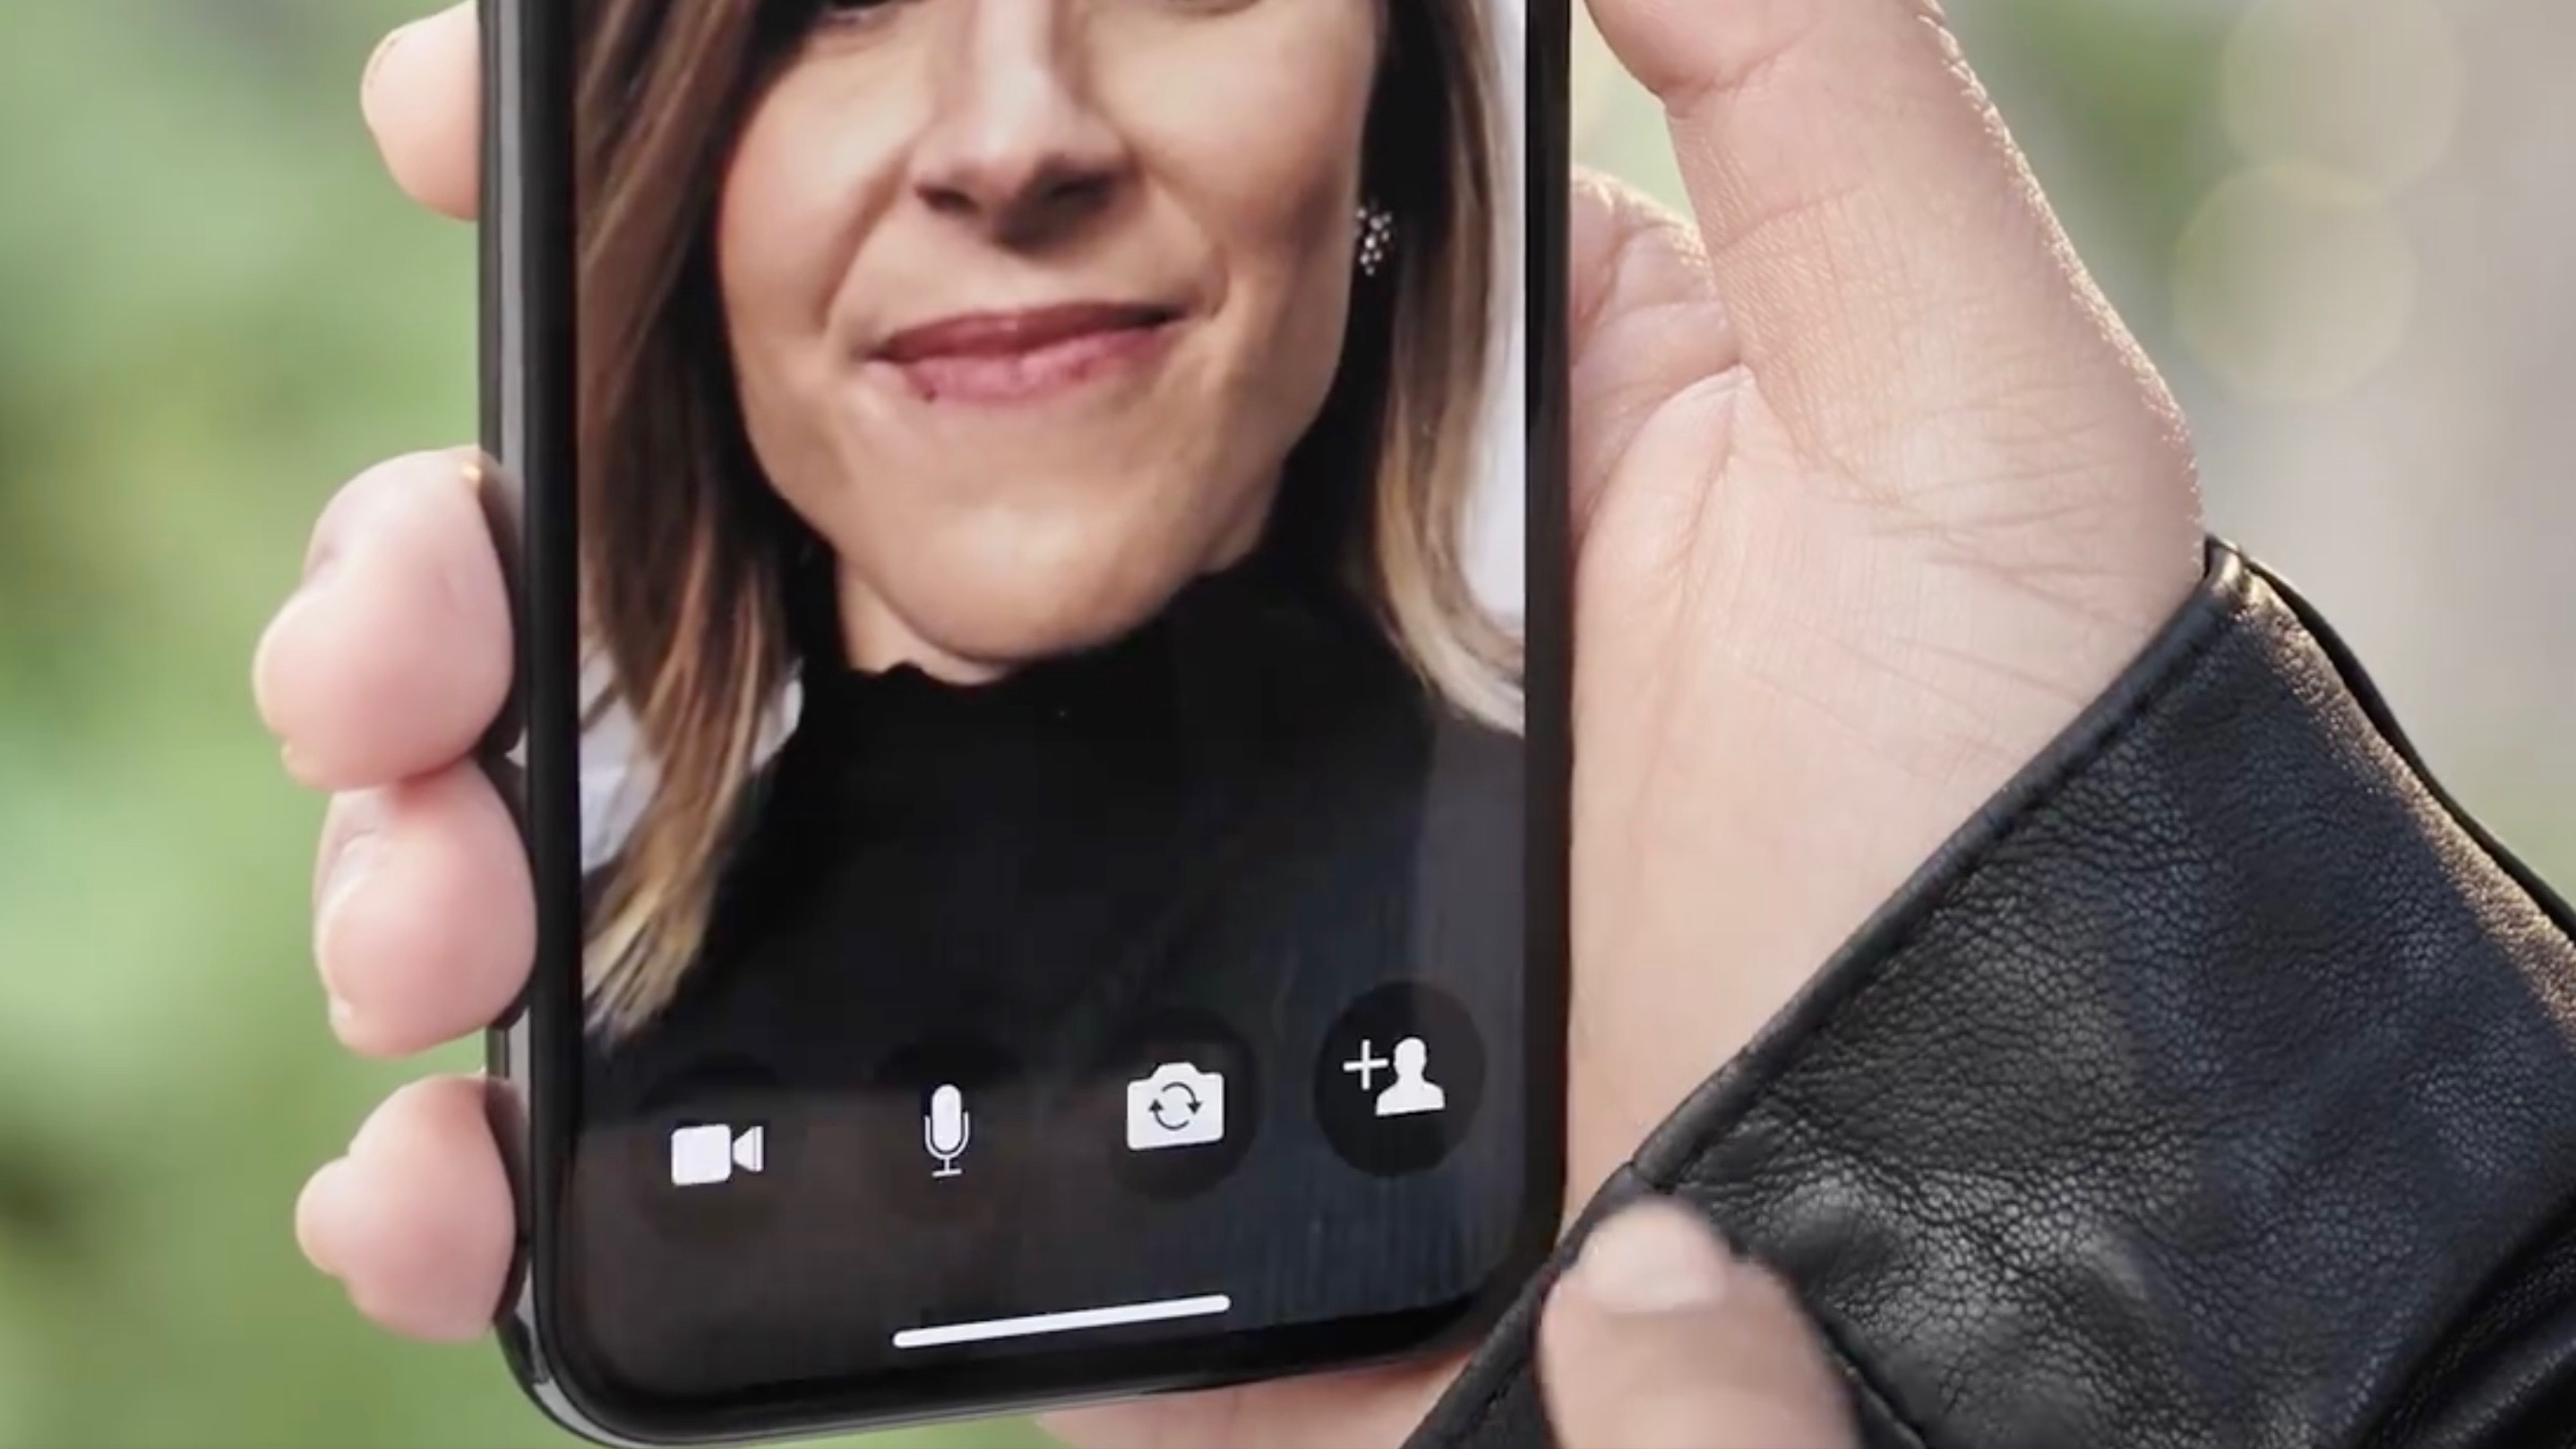 How to turn on video calling on facebook messenger